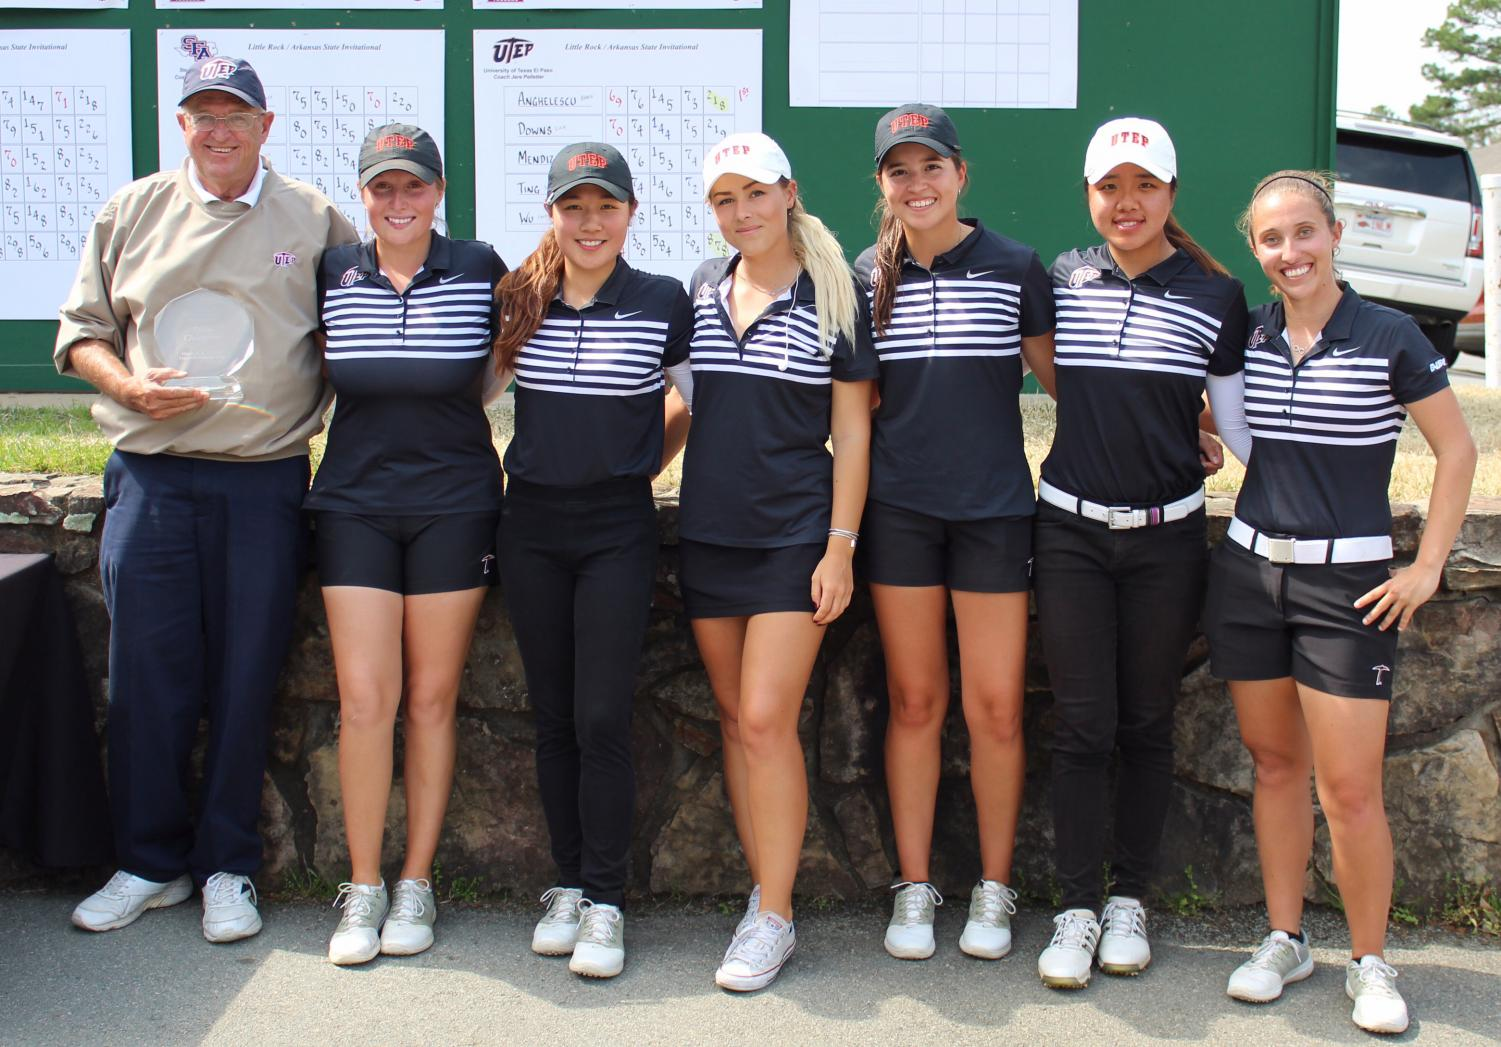 The UTEP women's golf team won their first team title since 2016 on Tuesday afternoon in Maumelle, Ark.